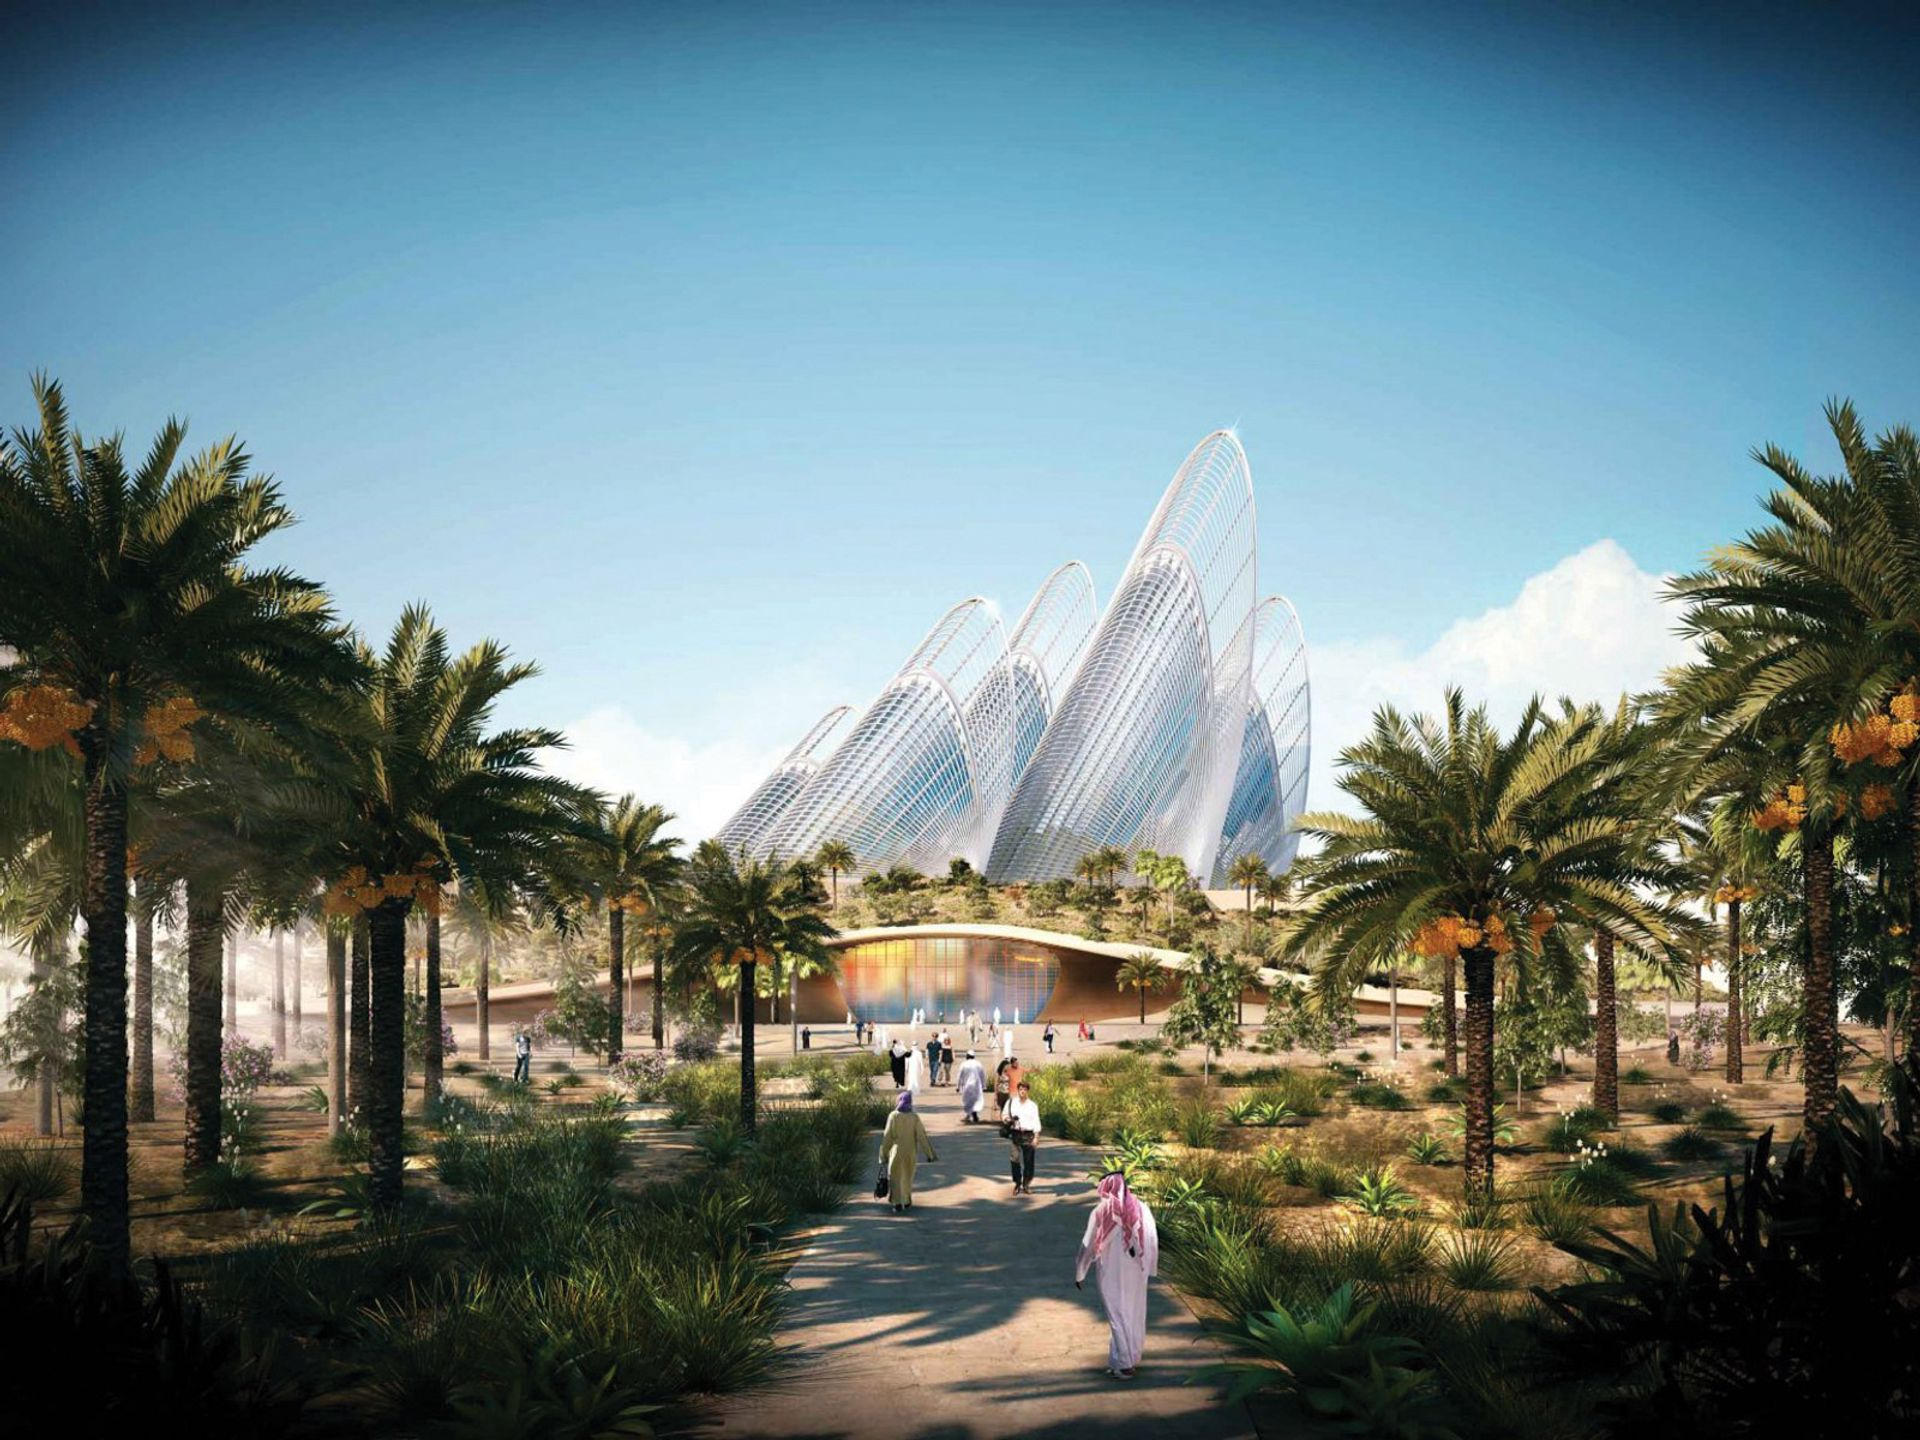 A rendering of the Zayed National Museum, by Foster + Partners. The soaring glass structures were inspired by a falcon's wing feathers ©  Foster + Partners